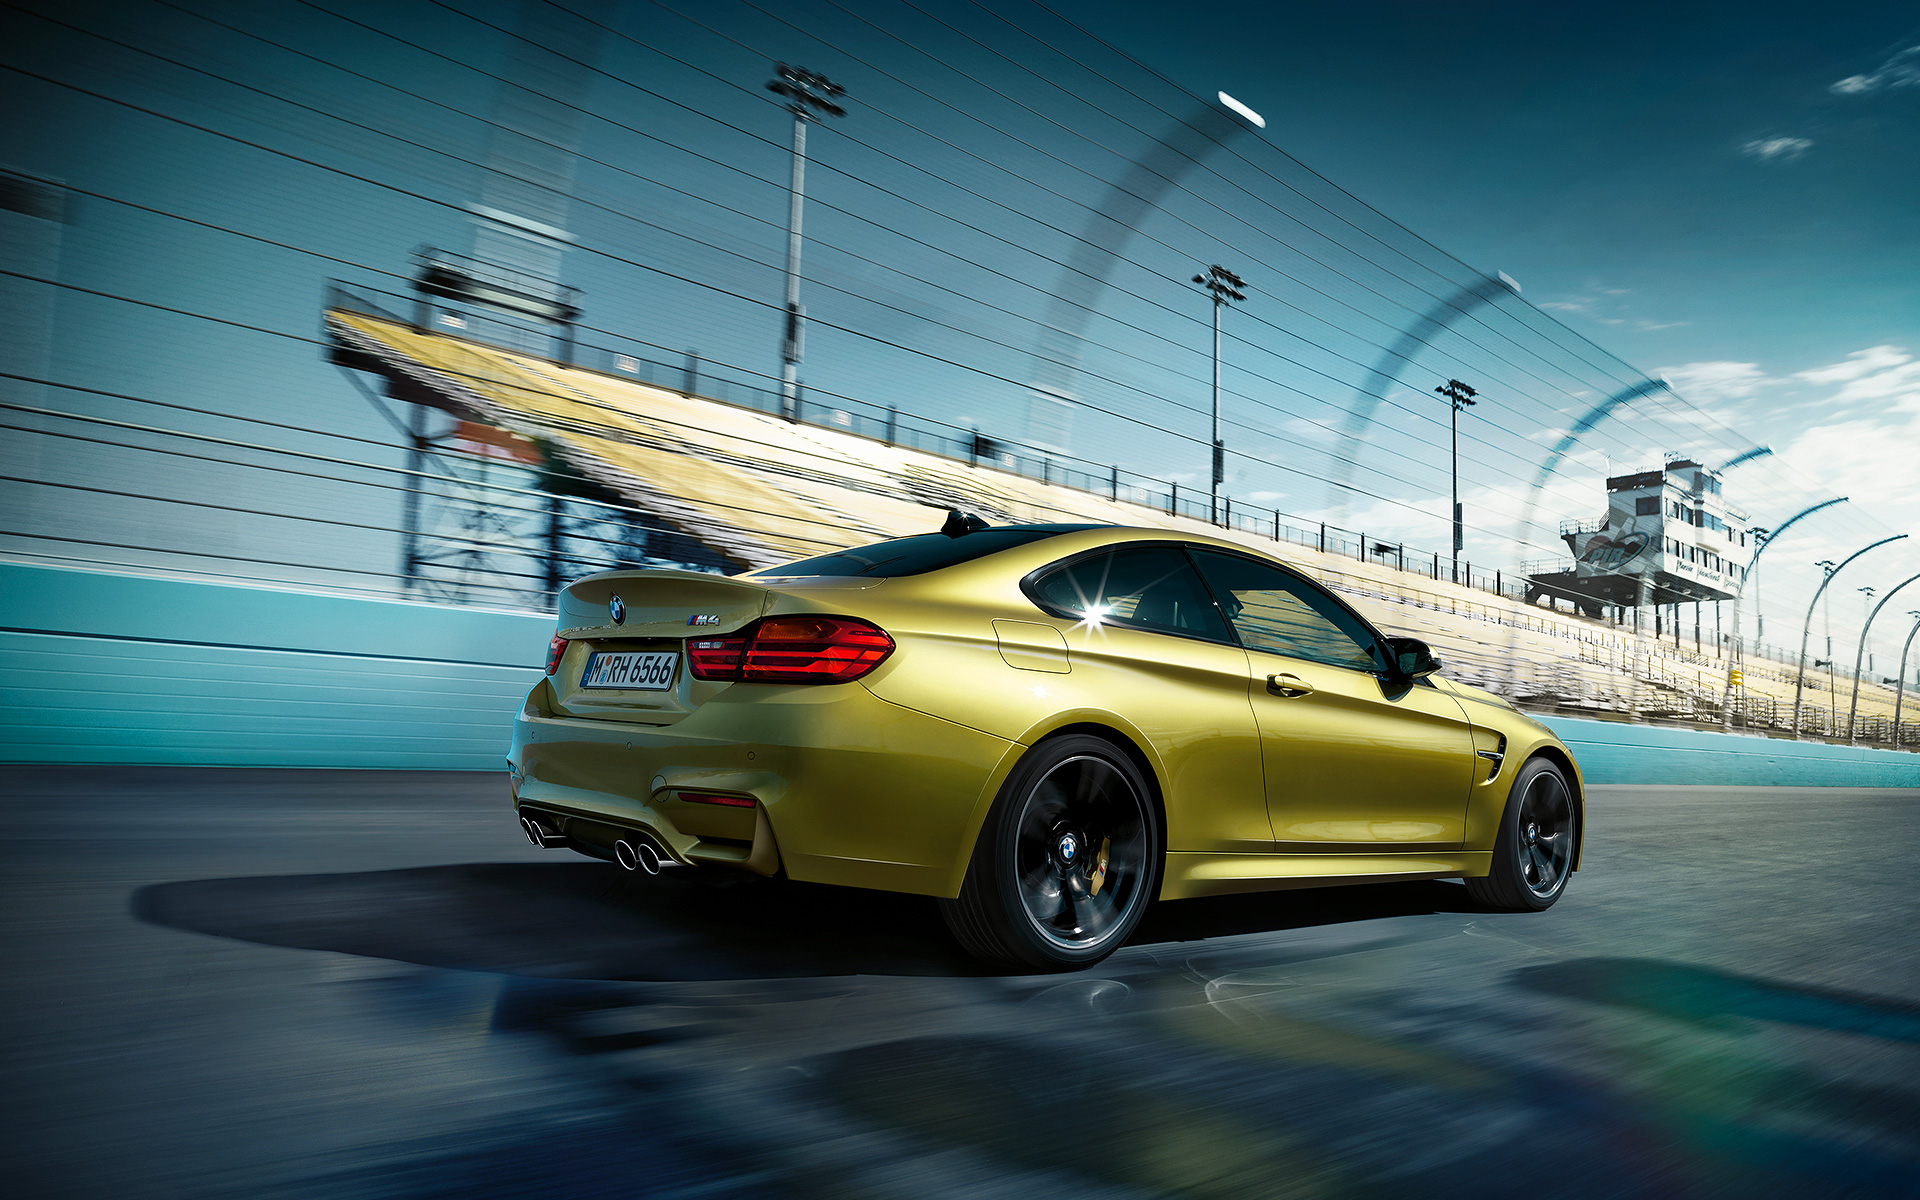 Top Wallpaper High Resolution Bmw - bmw-wallpaper-5122-5244-hd-wallpapers  Graphic_7683100.jpg